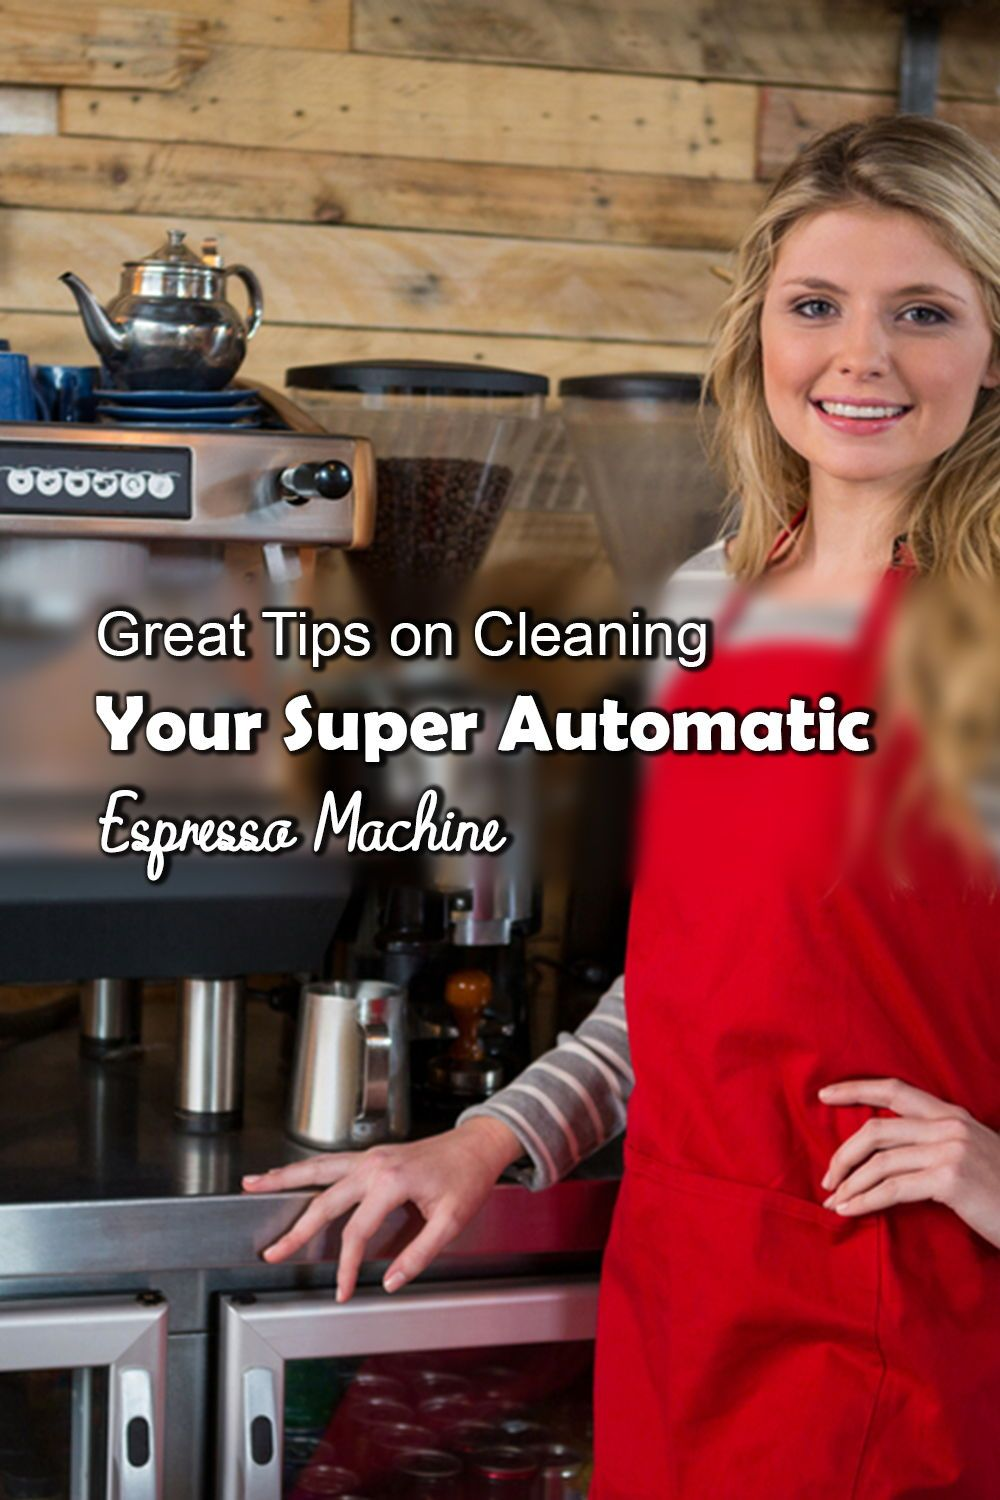 Great Tips on Cleaning Your Espresso Machine Automatic